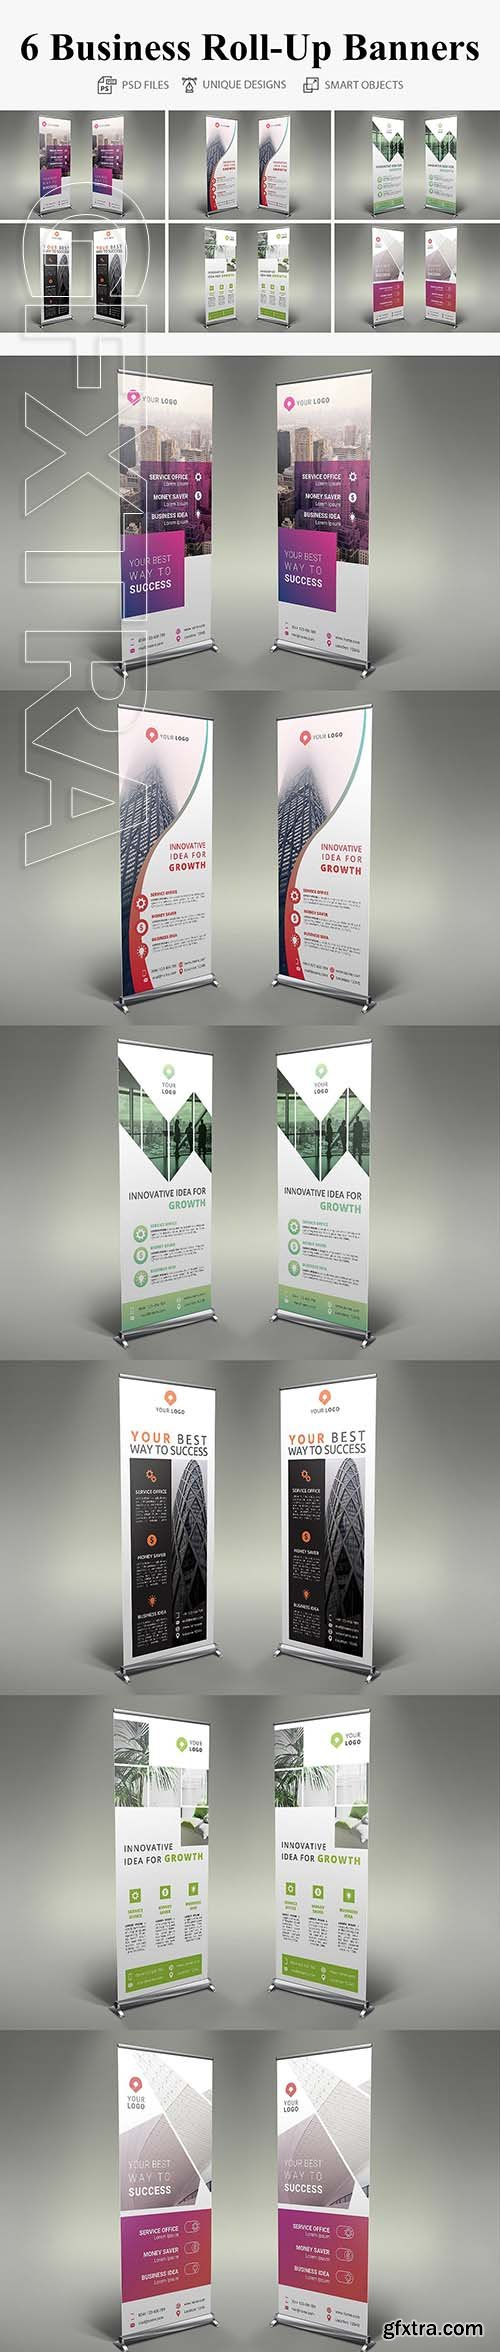 CreativeMarket - 6 Business Roll Up Banners 2708038